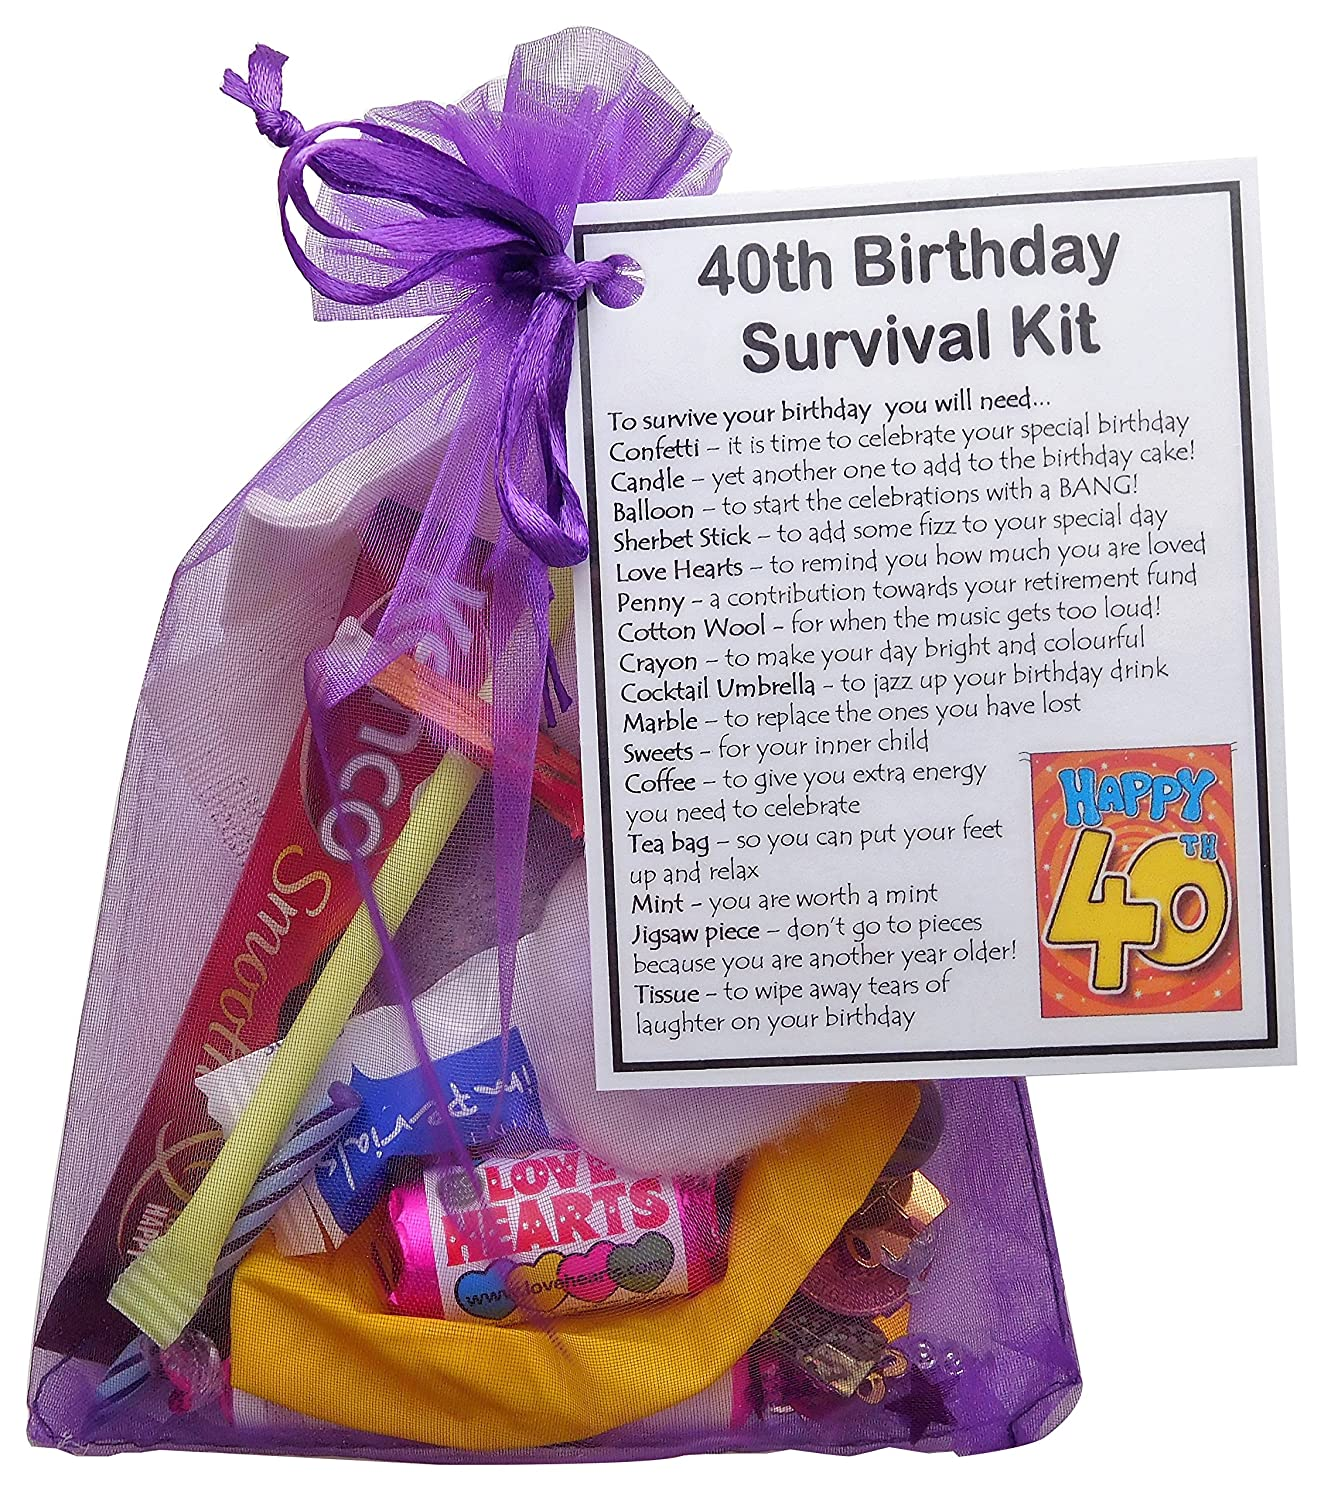 Best Friend Birthday Gifts Amazon Co Uk: Unique 40th Birthday Gift Ideas For Her